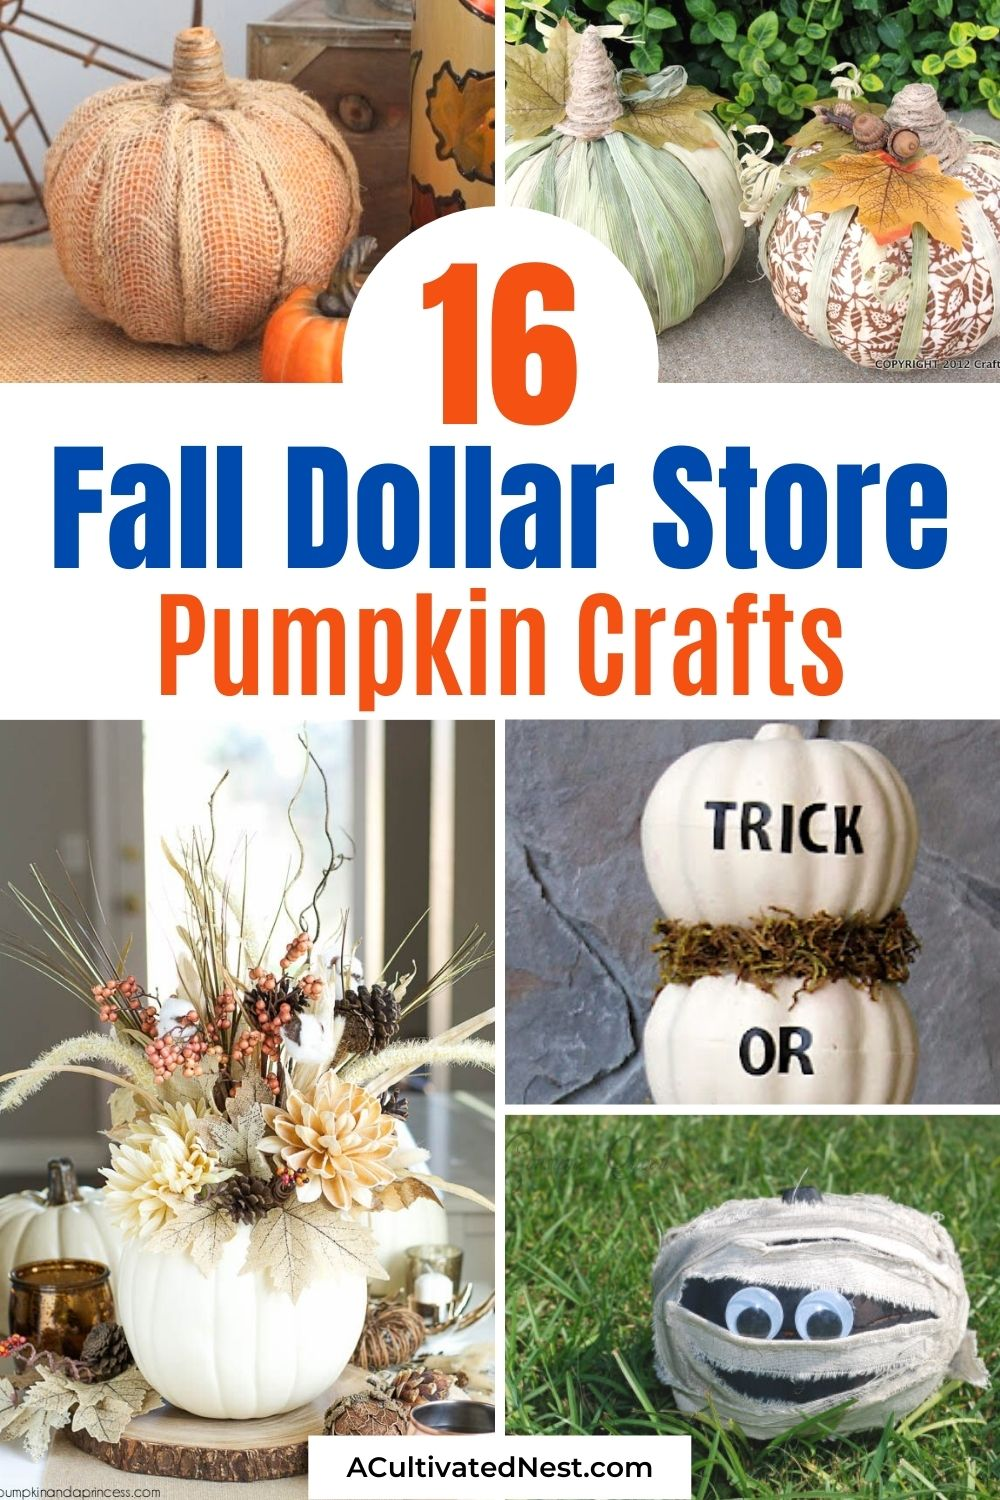 16 Dollar Store Pumpkin Crafts- Foam dollar store pumpkins are the perfect fall DIY décor supply! Use them in these fun fall dollar store pumpkin crafts!   #diyProjects #fallDecor #fallCraft #pumpkinDecor #ACultivatedNest